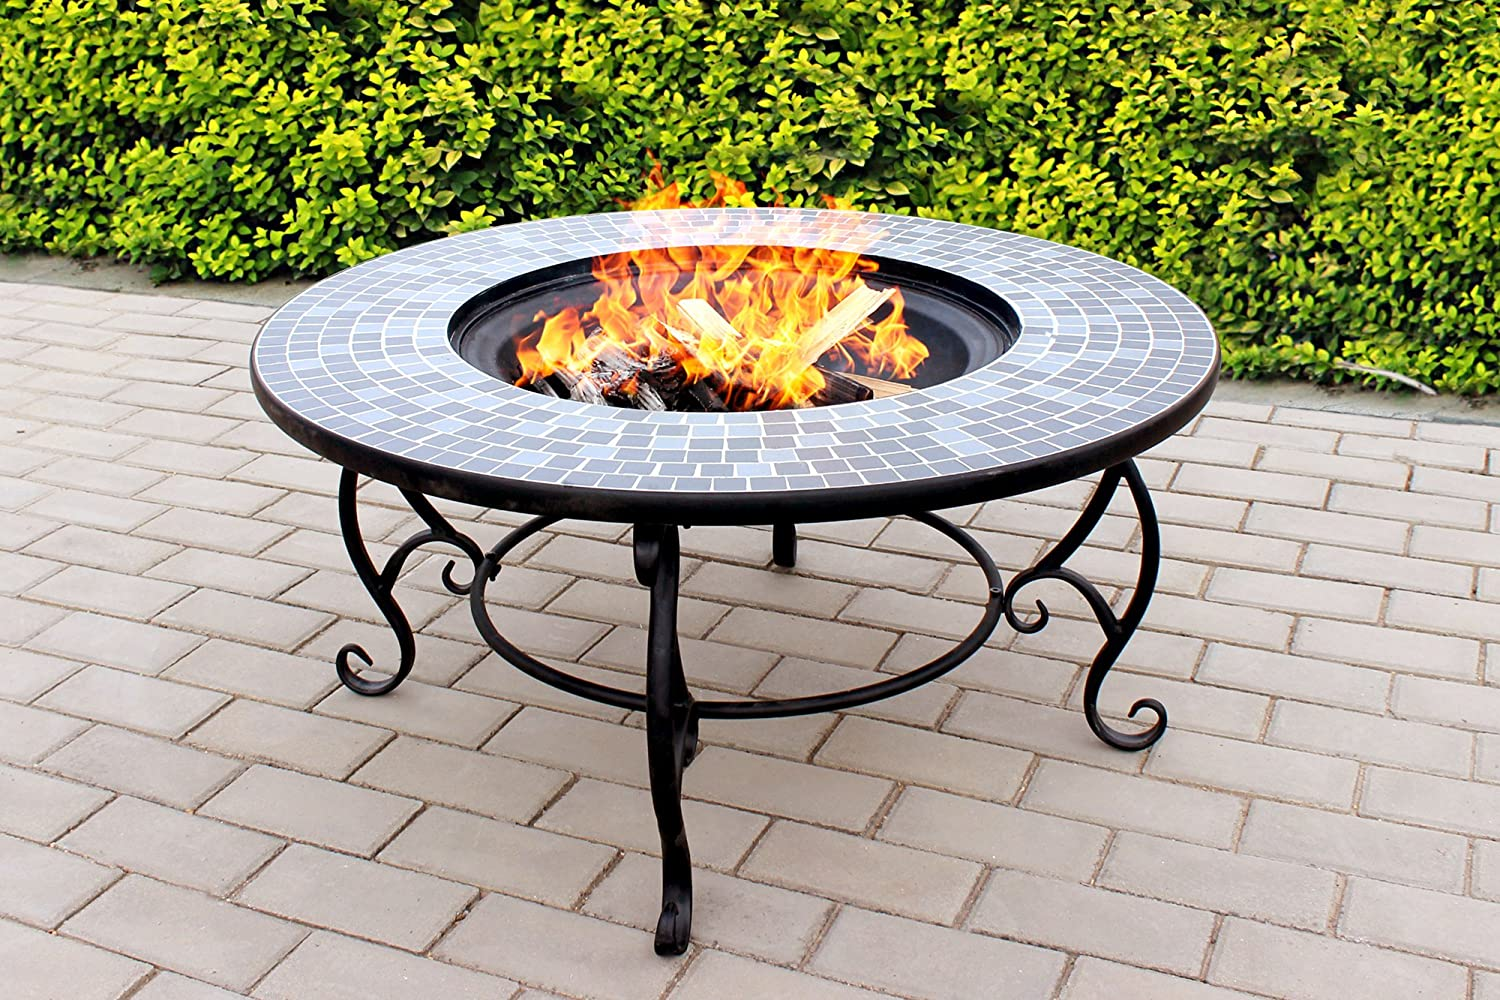 Centurion Supports Fireology GINESSA Sumptuous Garden U0026 Patio Heater Fire  Pit Brazier, Coffee Table, Barbecue And Ice Bucket With Mosaic Ceramic  Tiles: ...